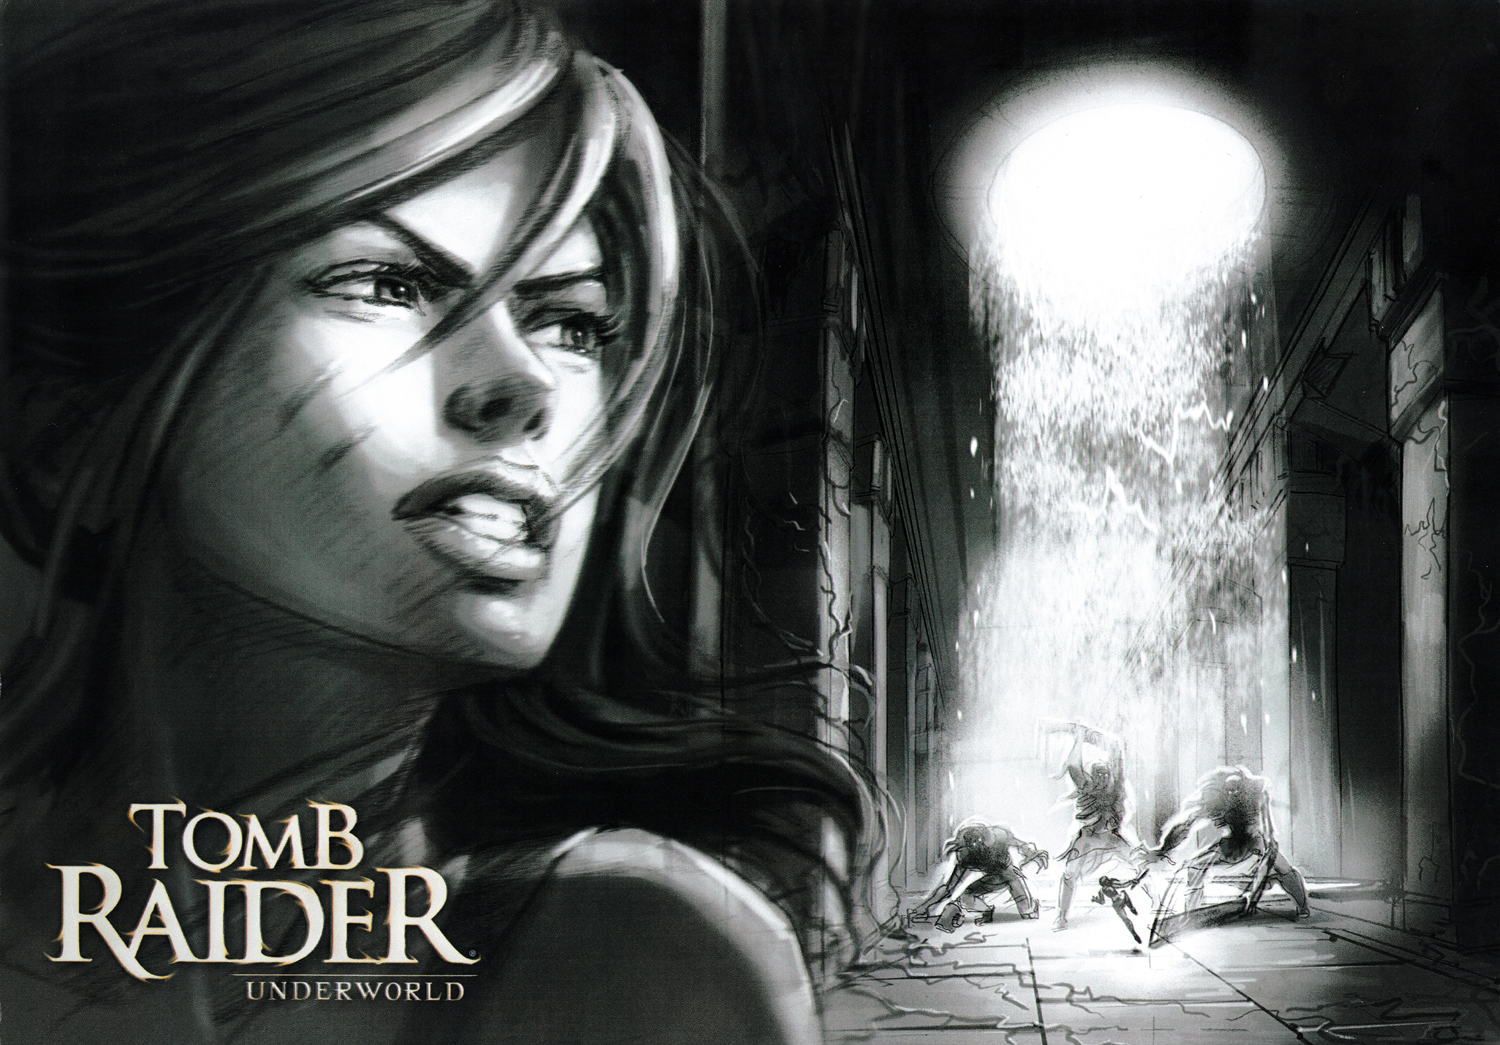 Retrocompatibilità Xbox One e boxart inediti per Tomb Raider: Underworld!